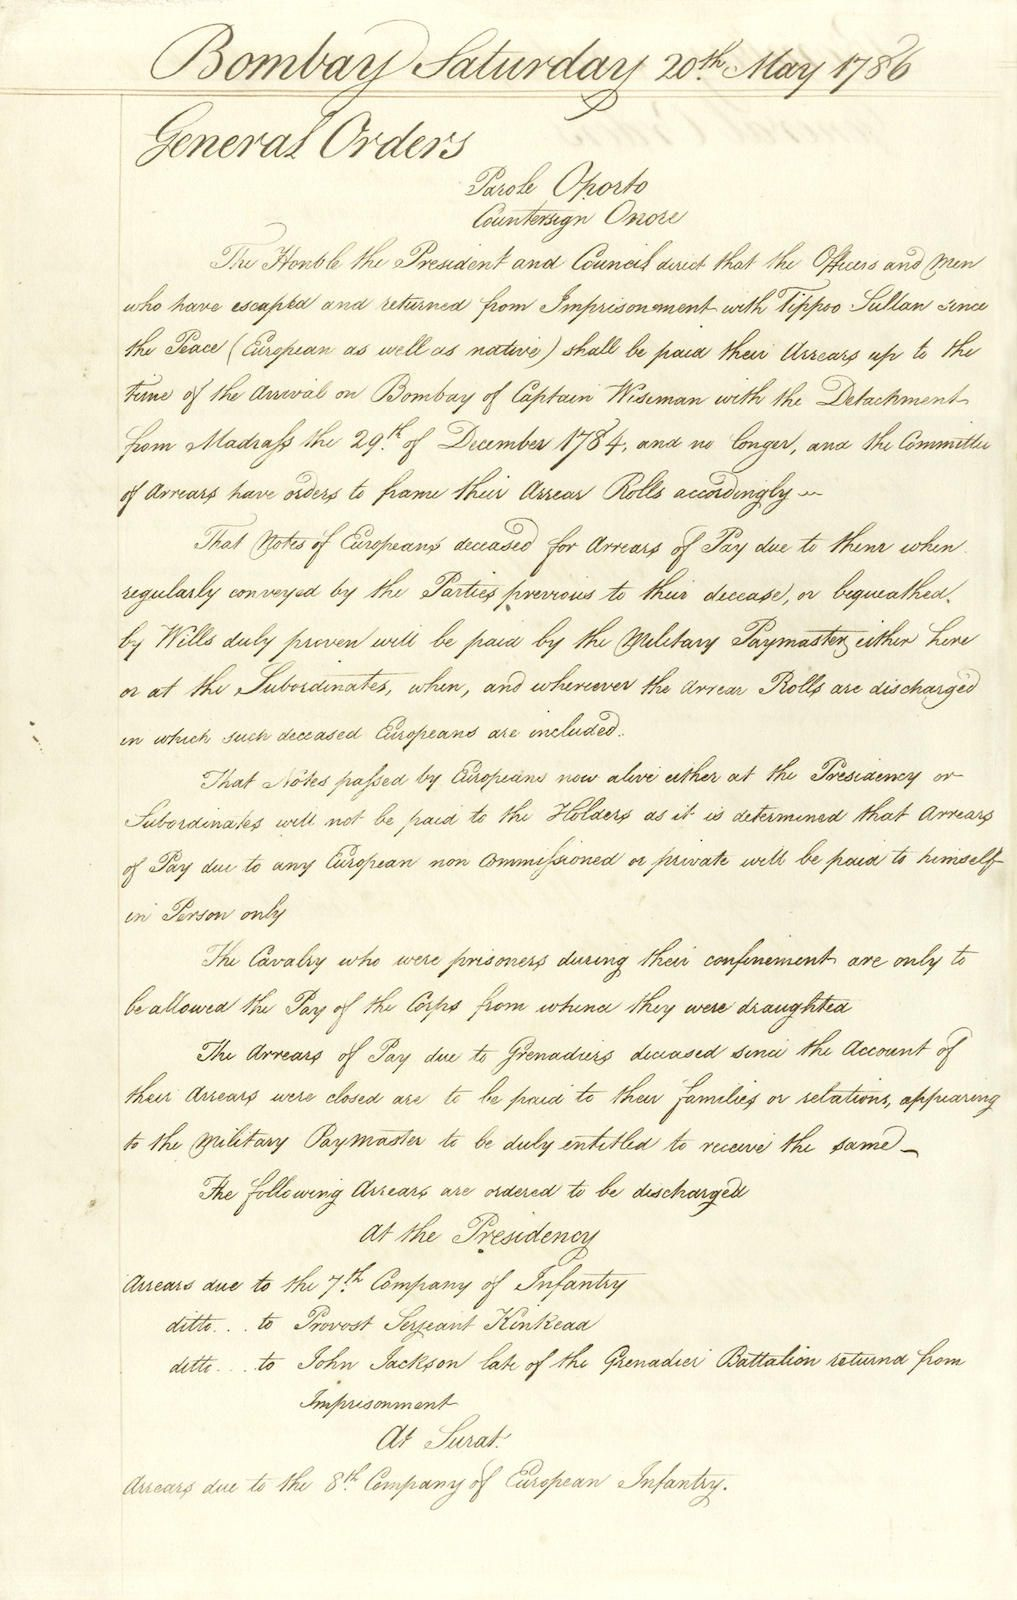 A Detailed Record Of The British Army In The Bombay Presidency Following The Treaty Of Mangalore Made With Tipu Sultan In Hyder Ali British Army Indian History